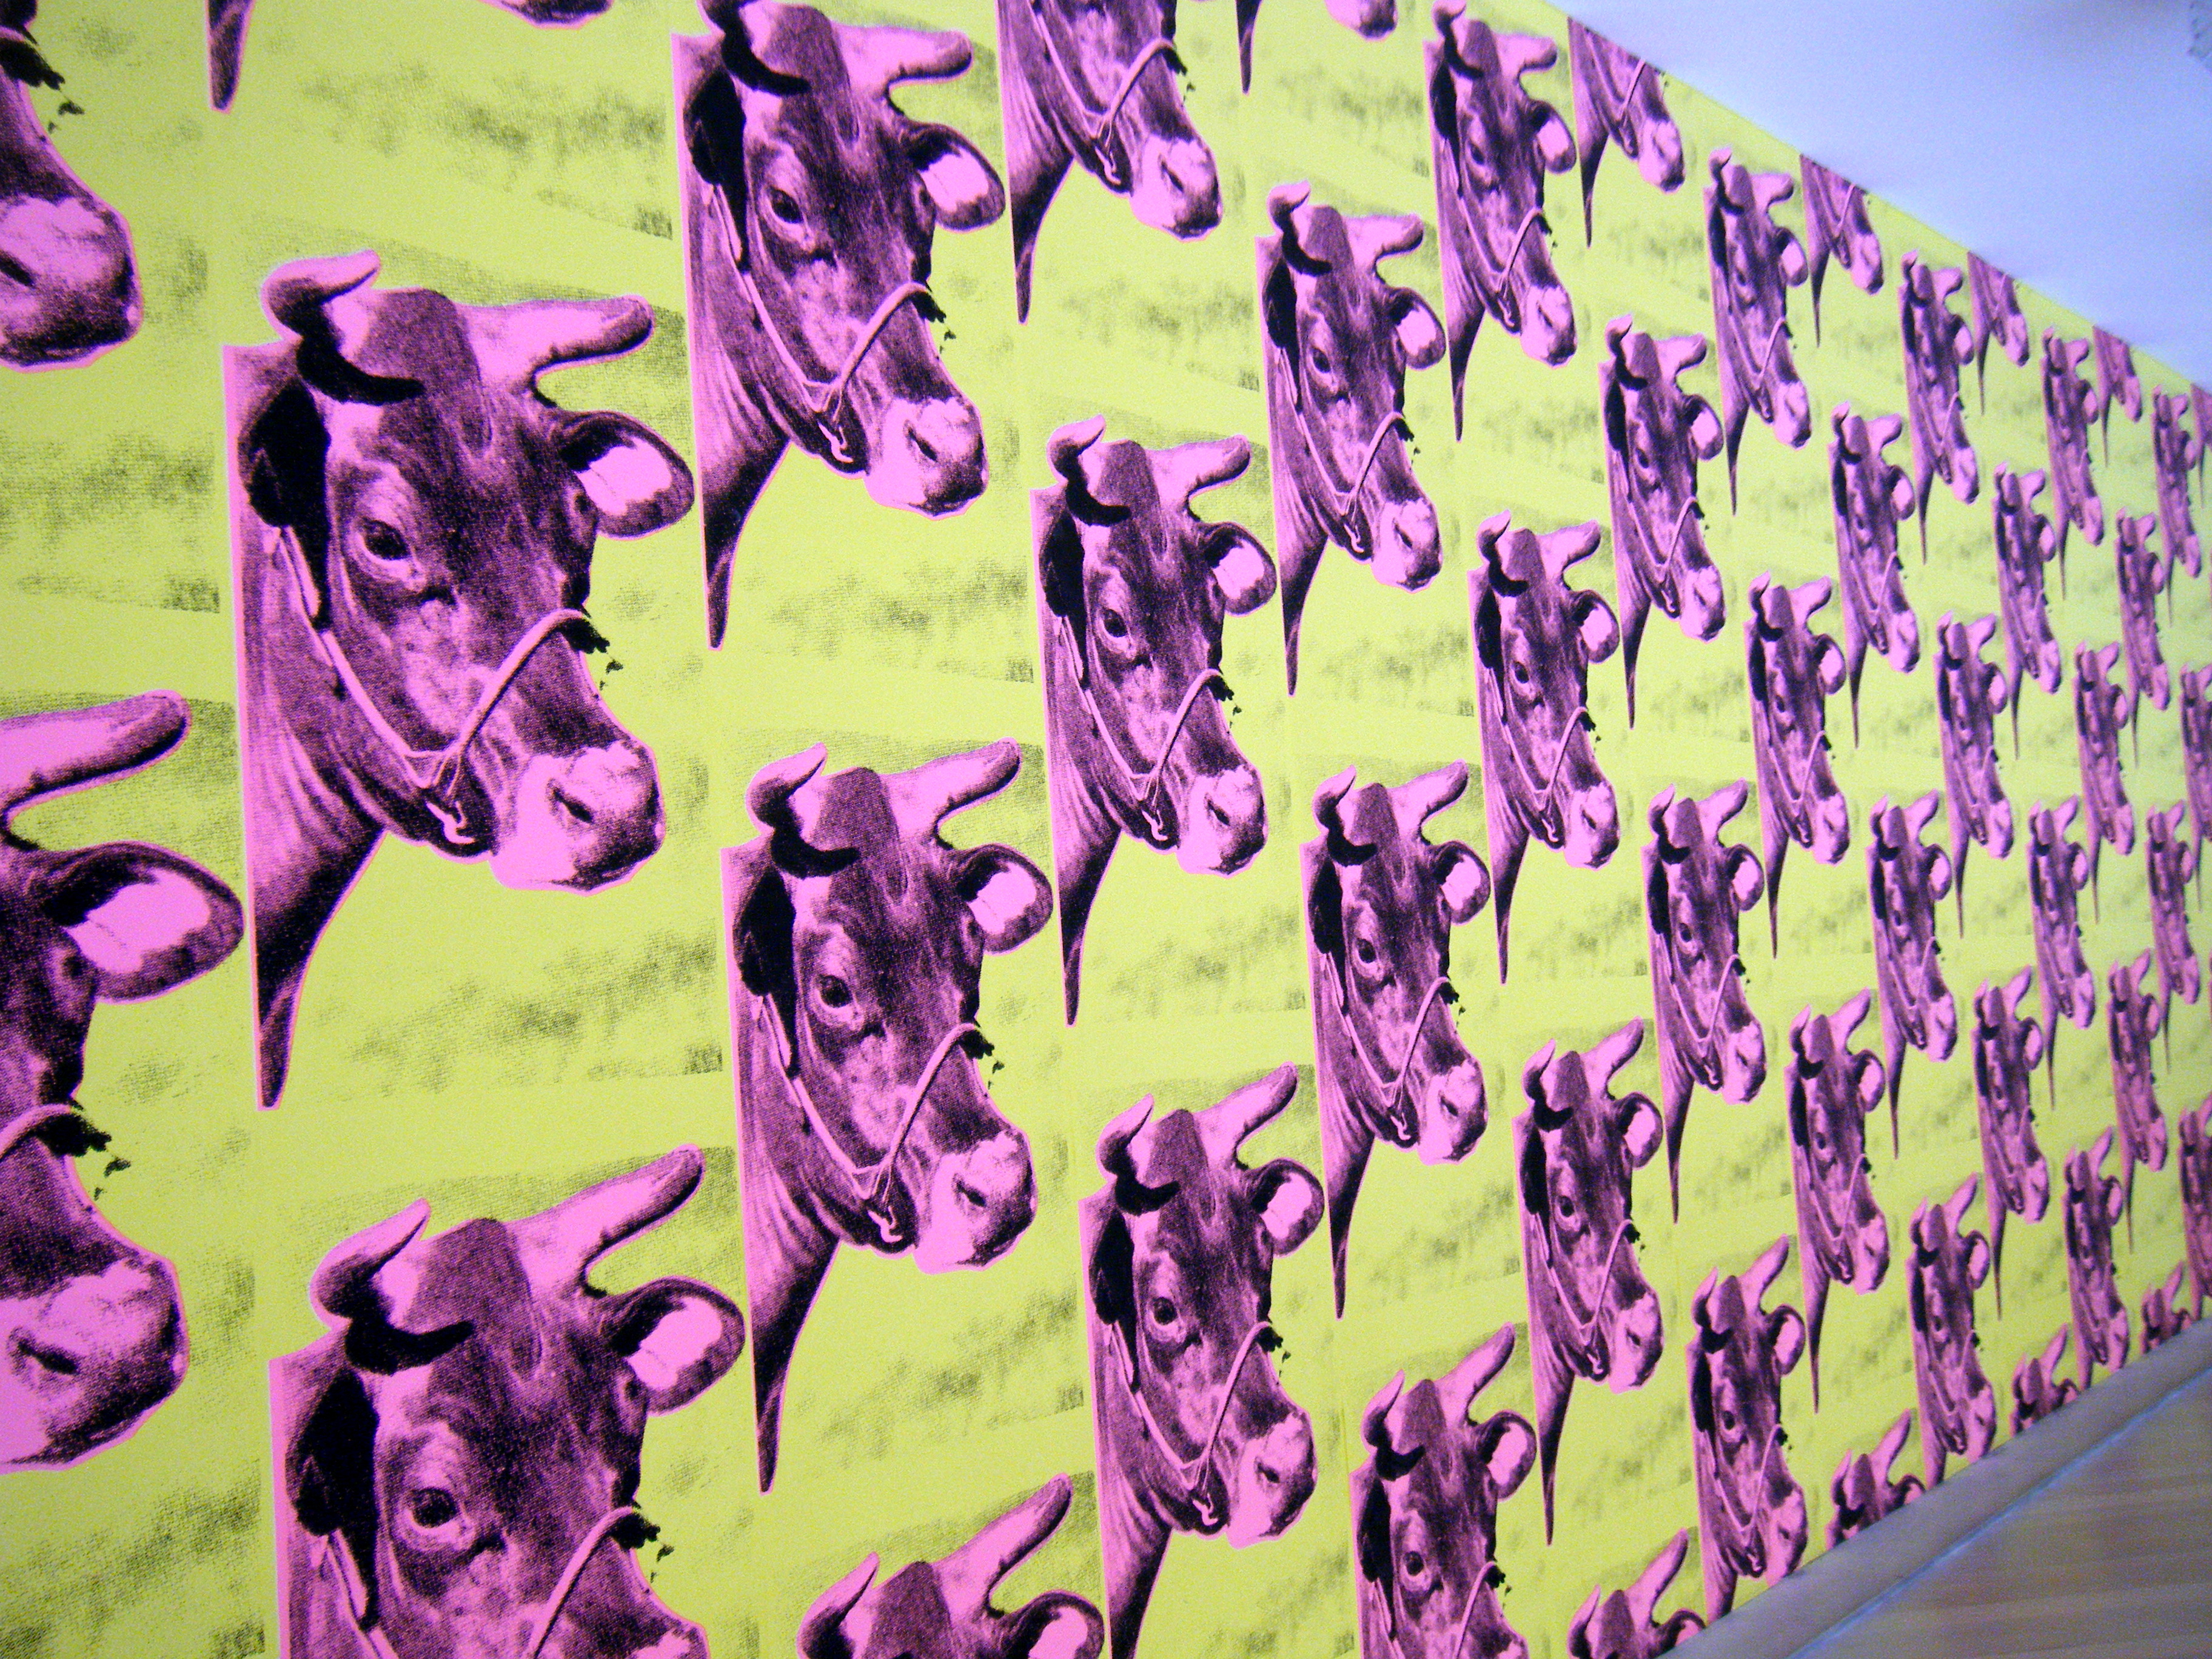 Displaying 17 Images For   Andy Warhol Cow Wallpaper 3648x2736